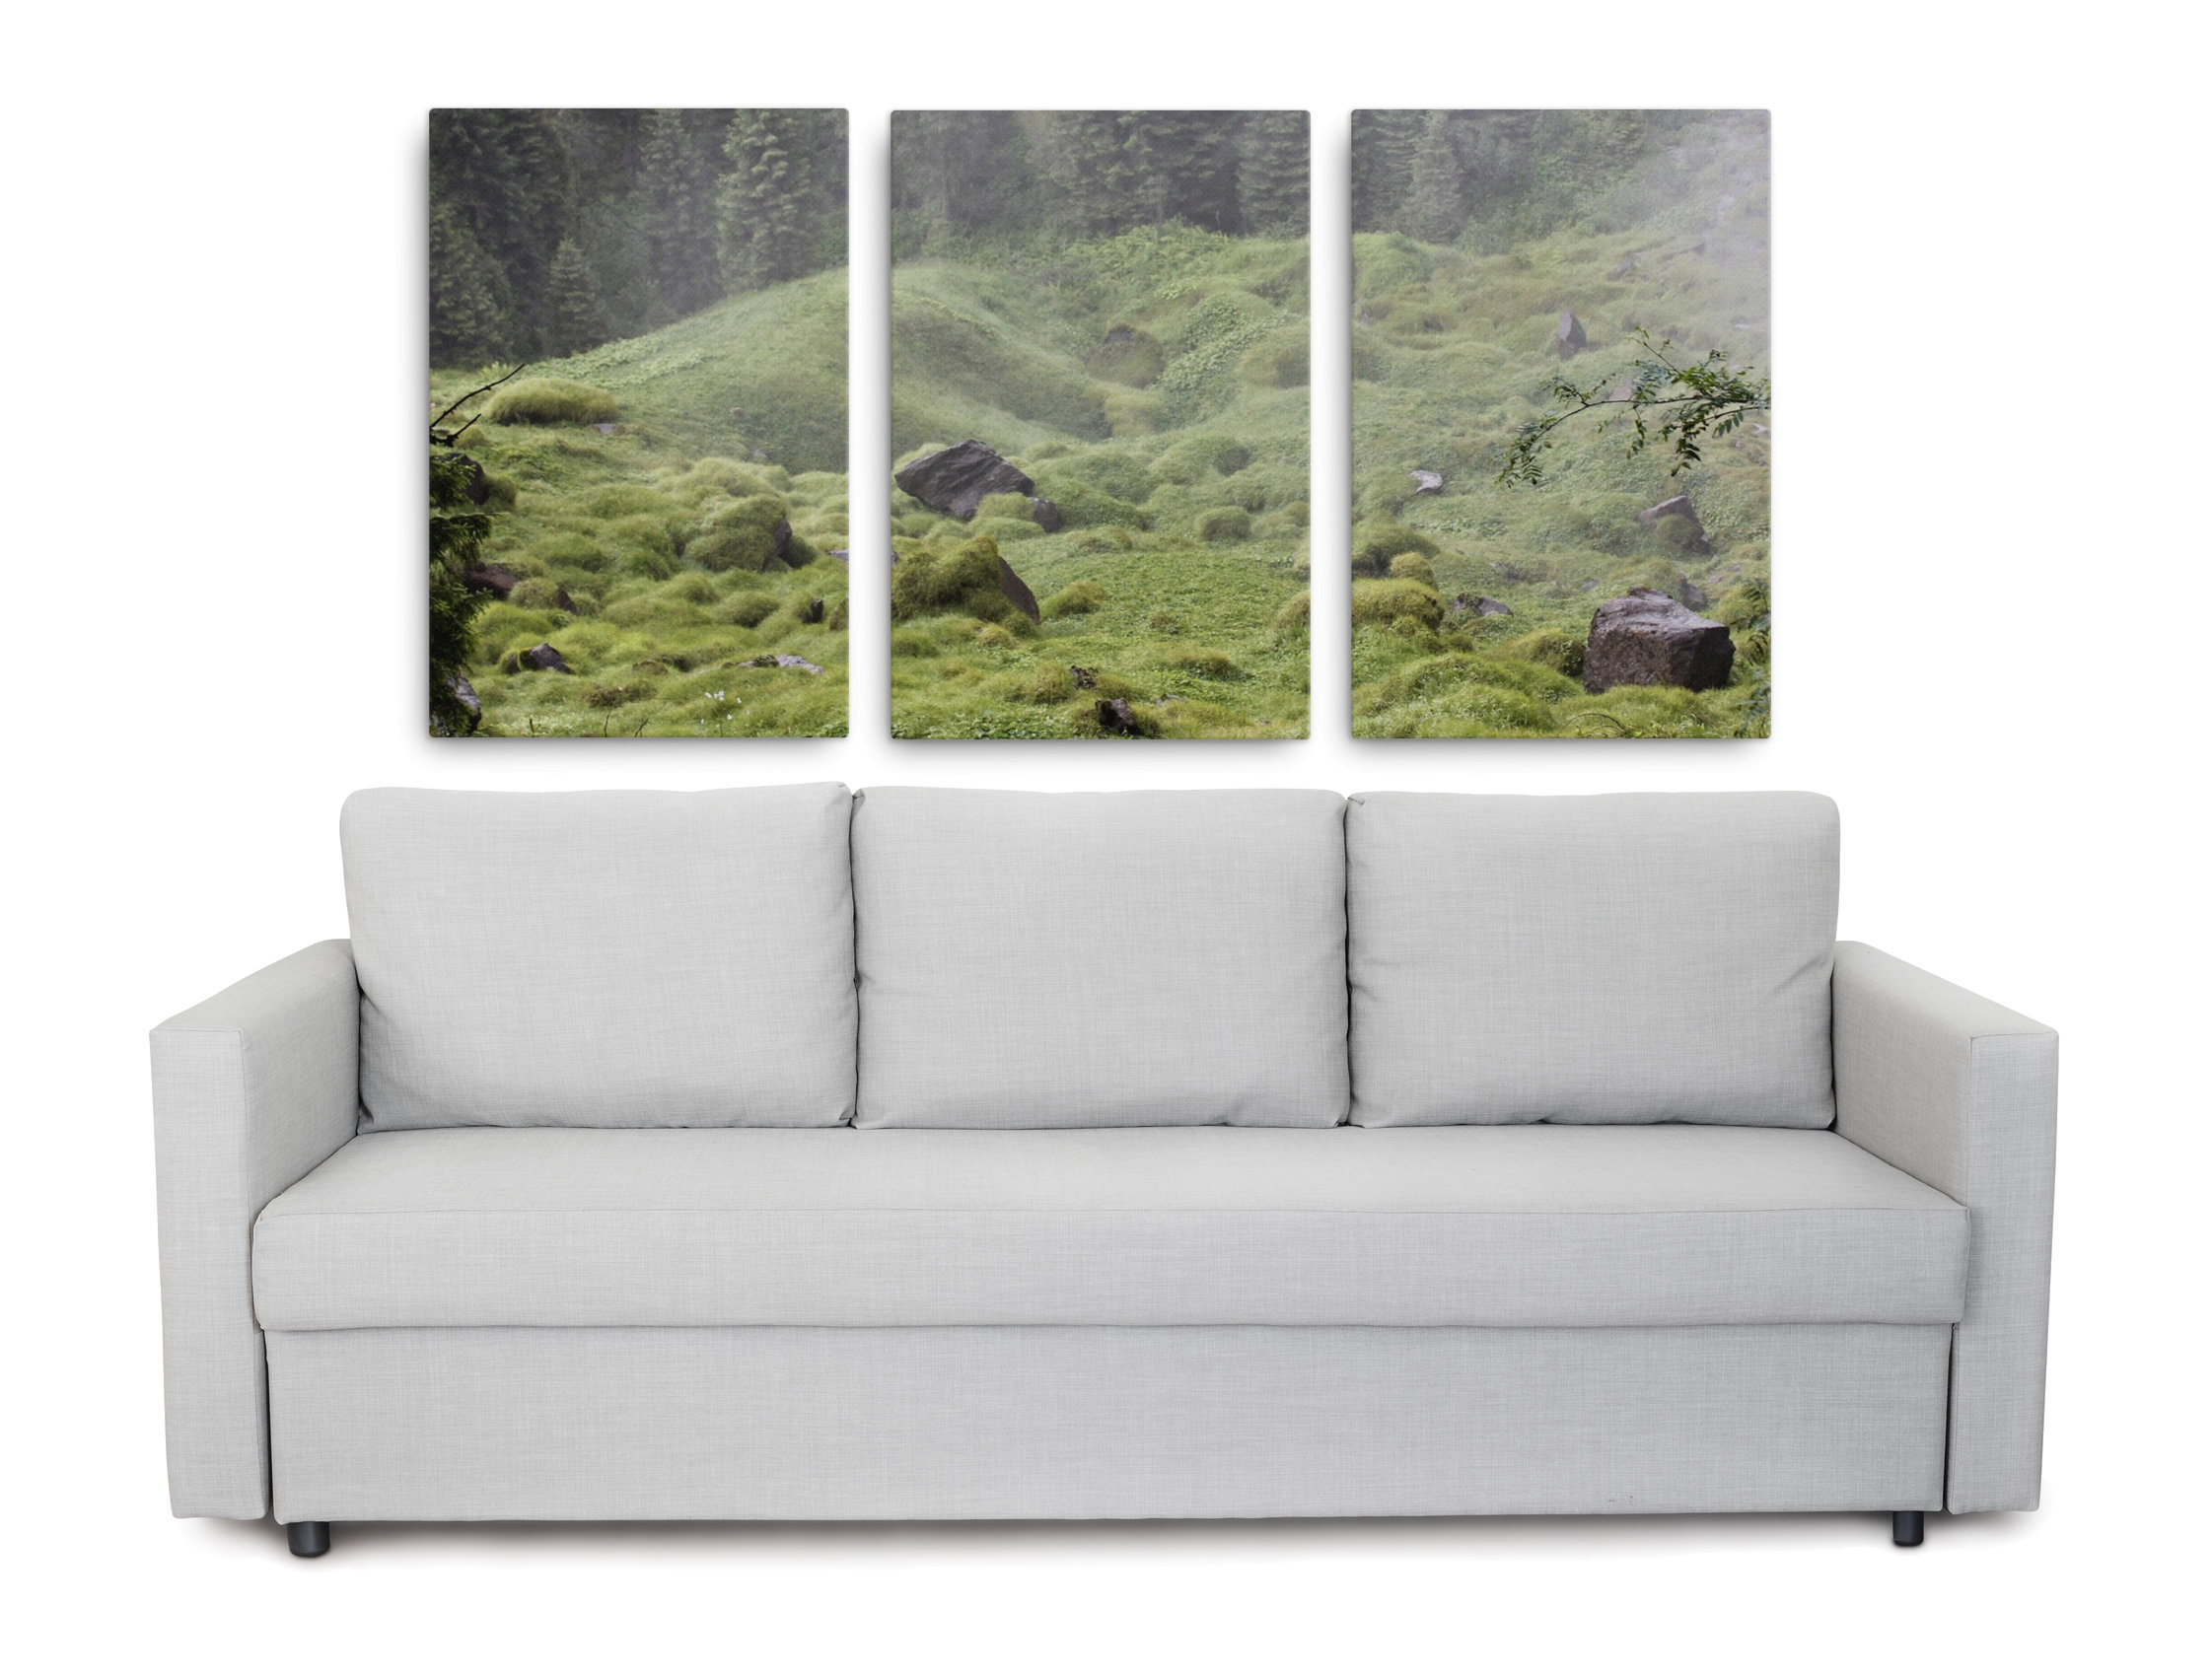 Product picture of set of 3 moss pictures of the forest underground